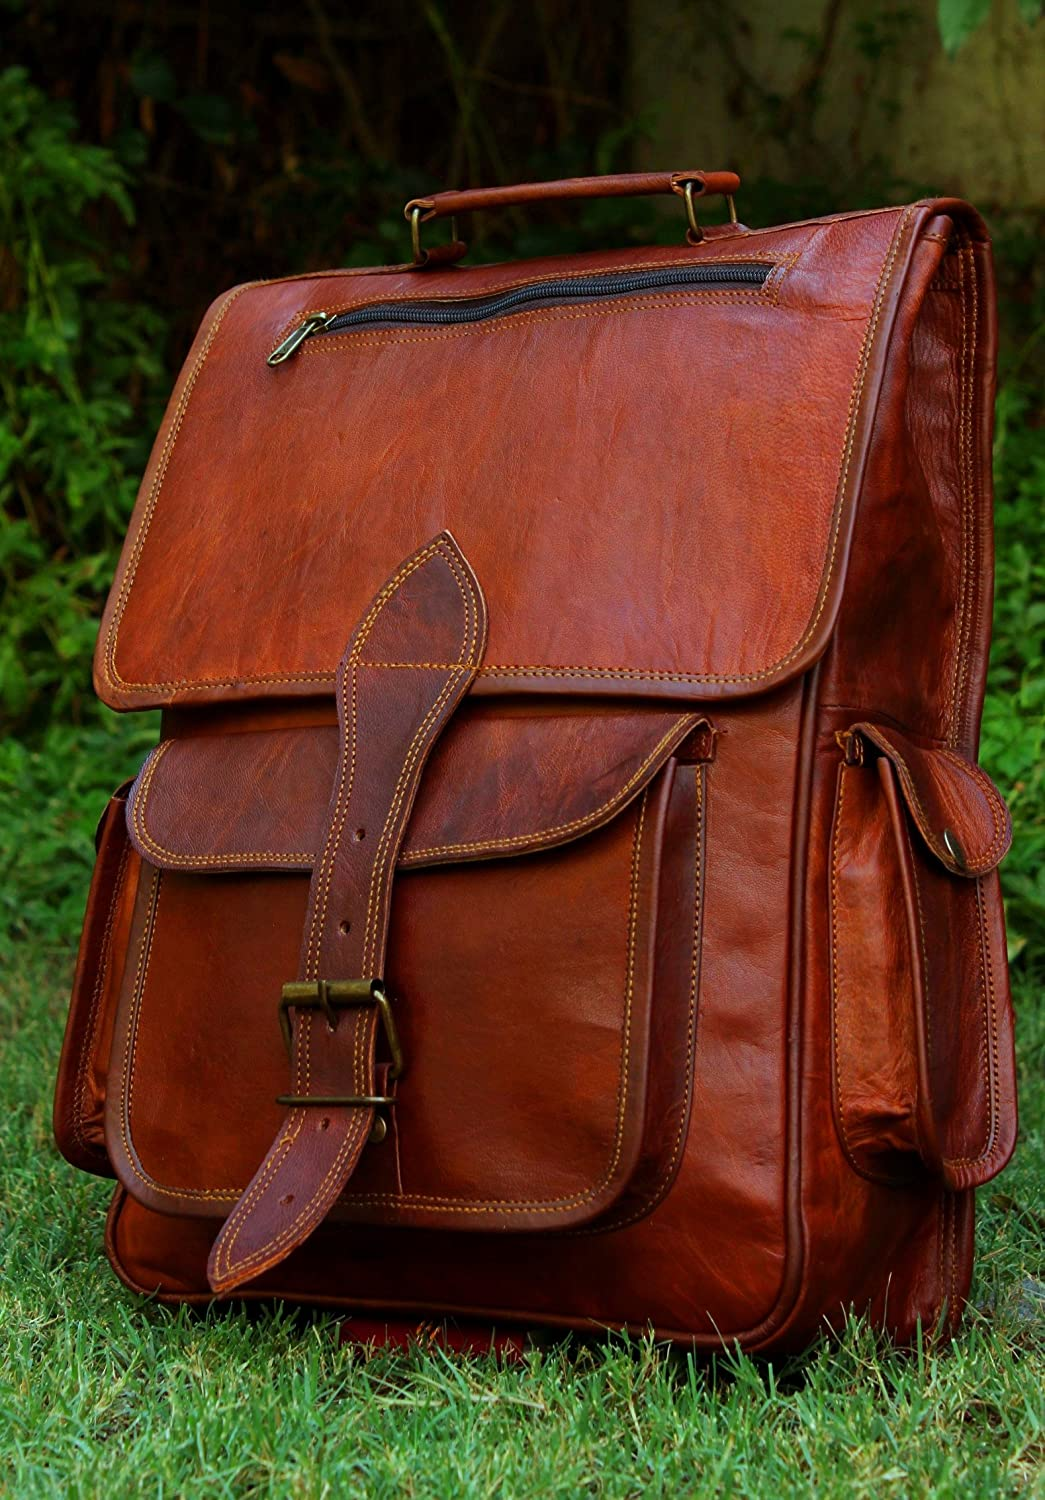 handmadecraft Vintage Bag Leather Handmade Vintage Style Backpack College Bag